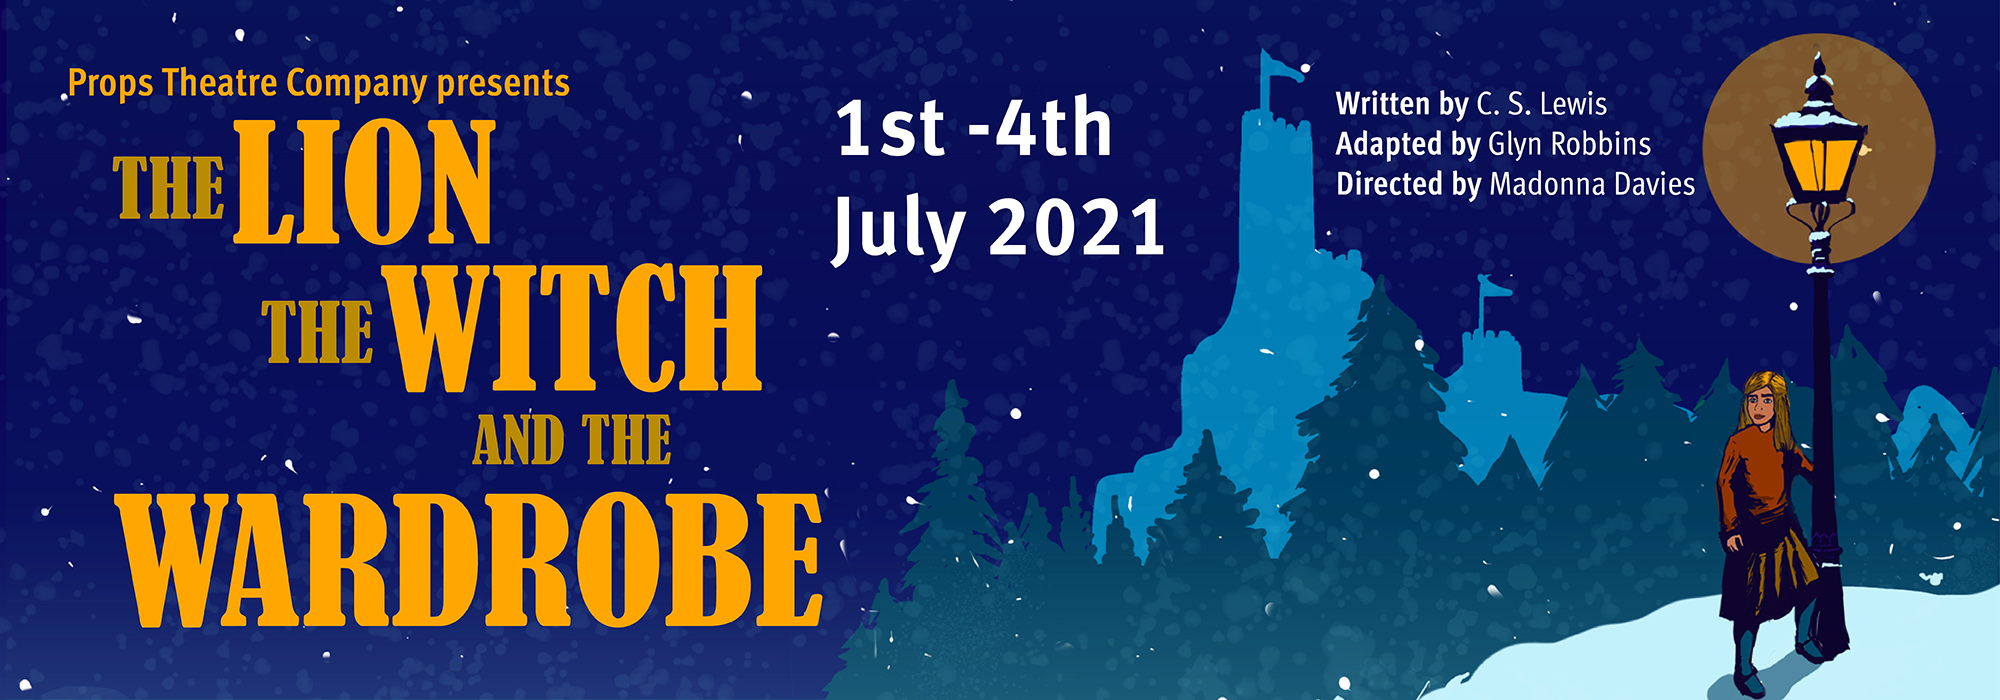 The Lion the witch and the wardrobe by Full Throttle Theatre - 1st-4th July 2021